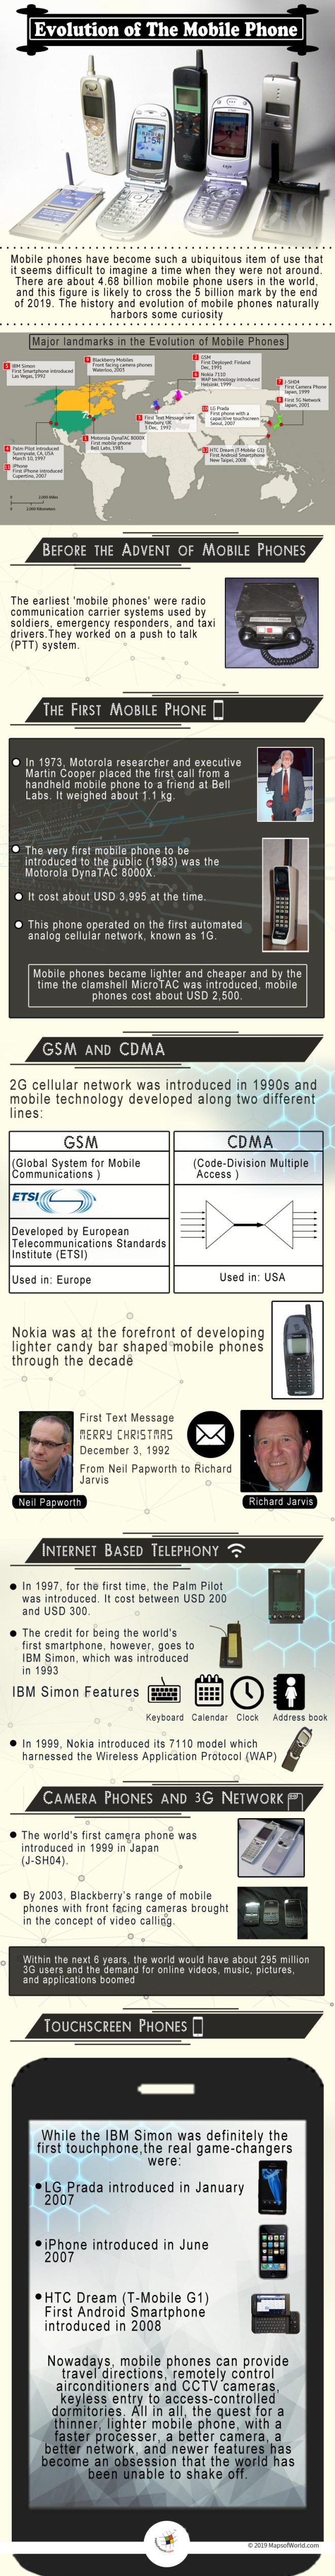 Infographic Giving Details on the Evolution of Mobile Phone